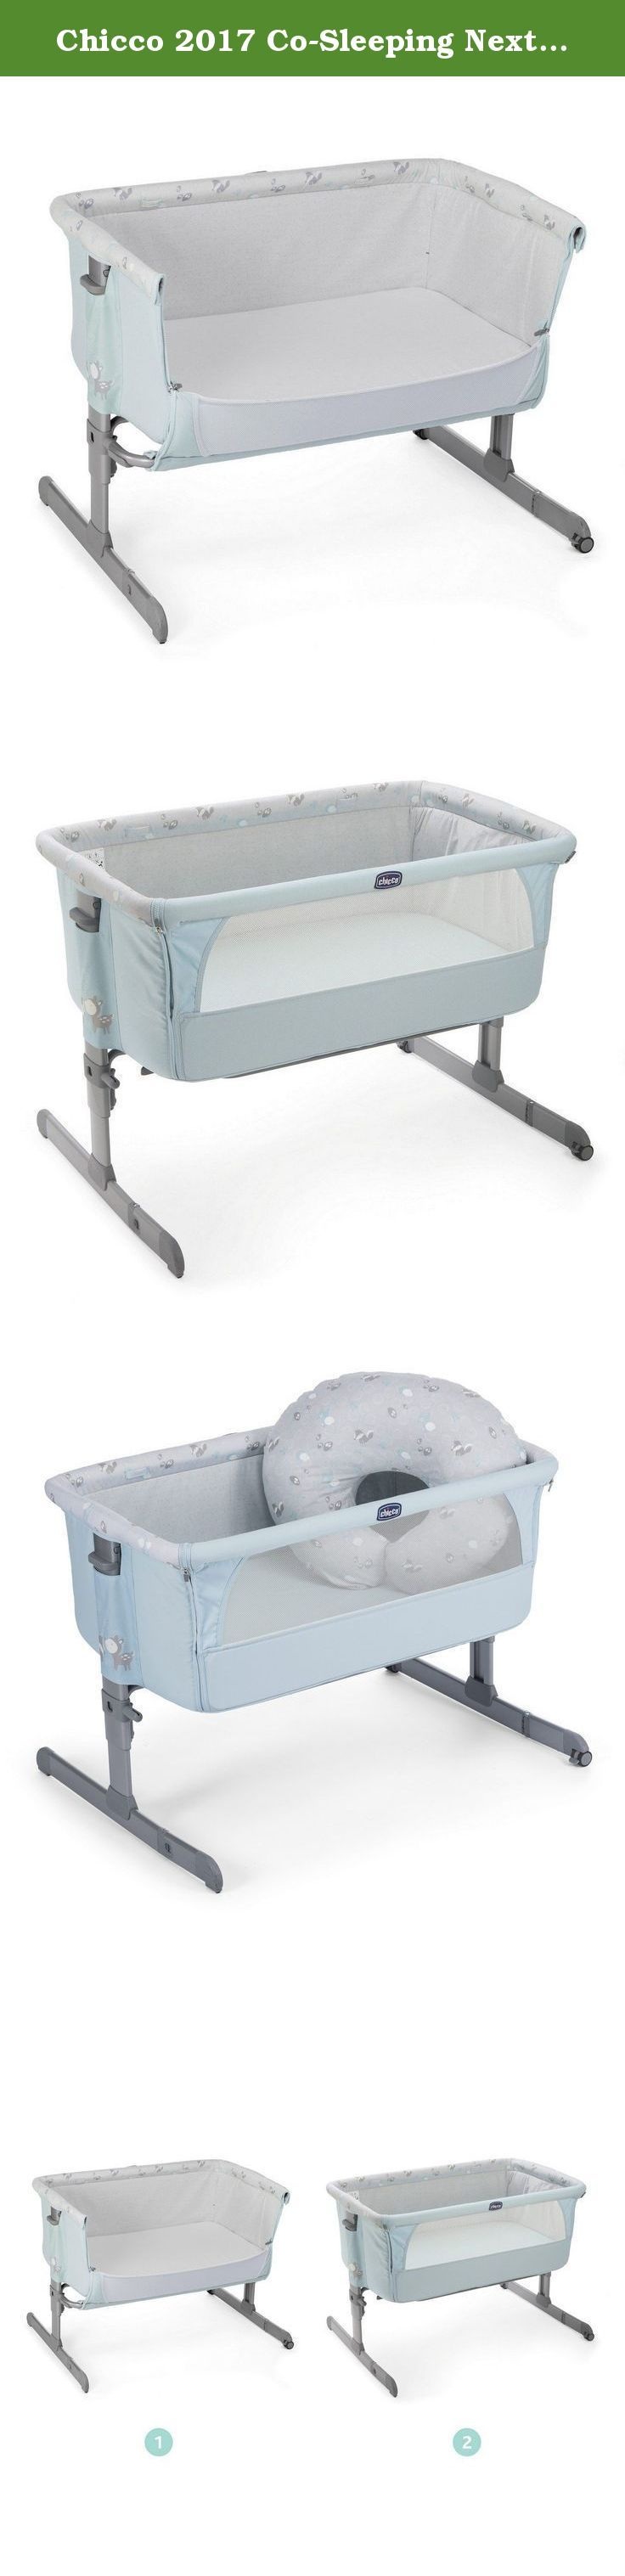 Chicco 2017 Co-Sleeping Next2Me Sky. berry Next2Me cradle Cradle Next2Me, everyone is happy. Space dedicated to sleep and dormitine where chasing wonderful dreams or exchanging smiles with mom and dad, the cradle is not only an essential accessory for any parent but also the environment that aims to transmit to the baby protection and safety from the earliest months, making the transition from the womb to the sweetest ectopic, natural and gradual. Designed to strengthen the bond between...